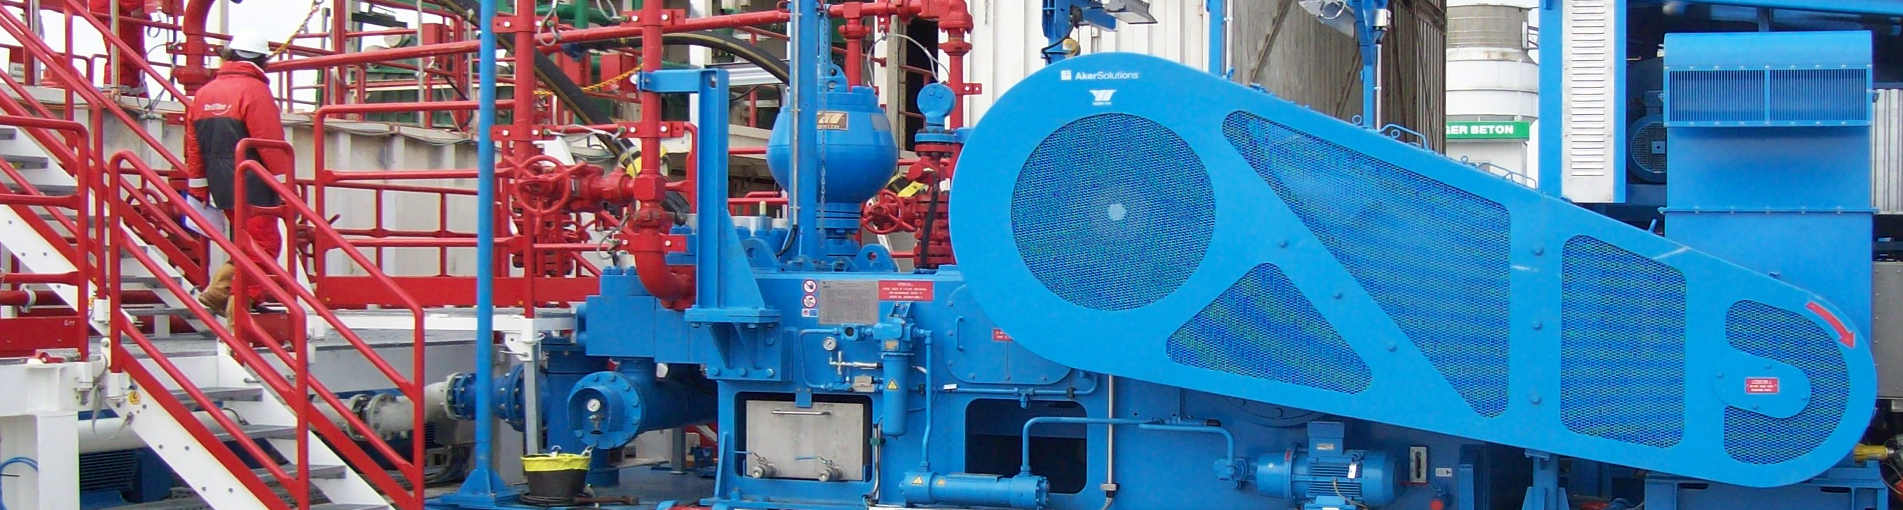 Drilling Technology Services